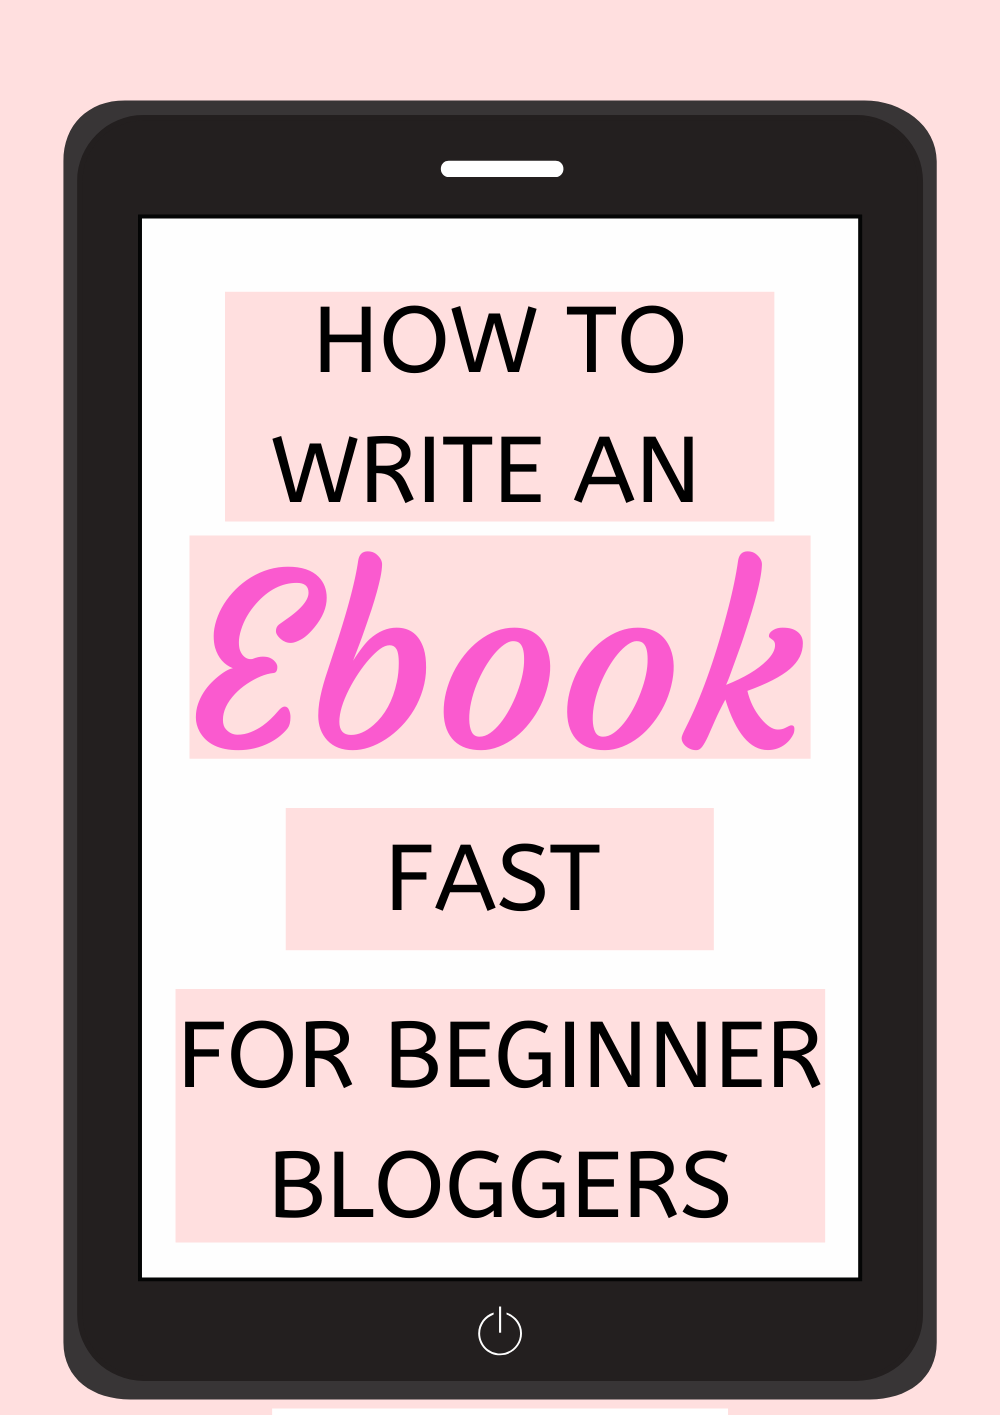 How to Write an eBook Fast for Beginners